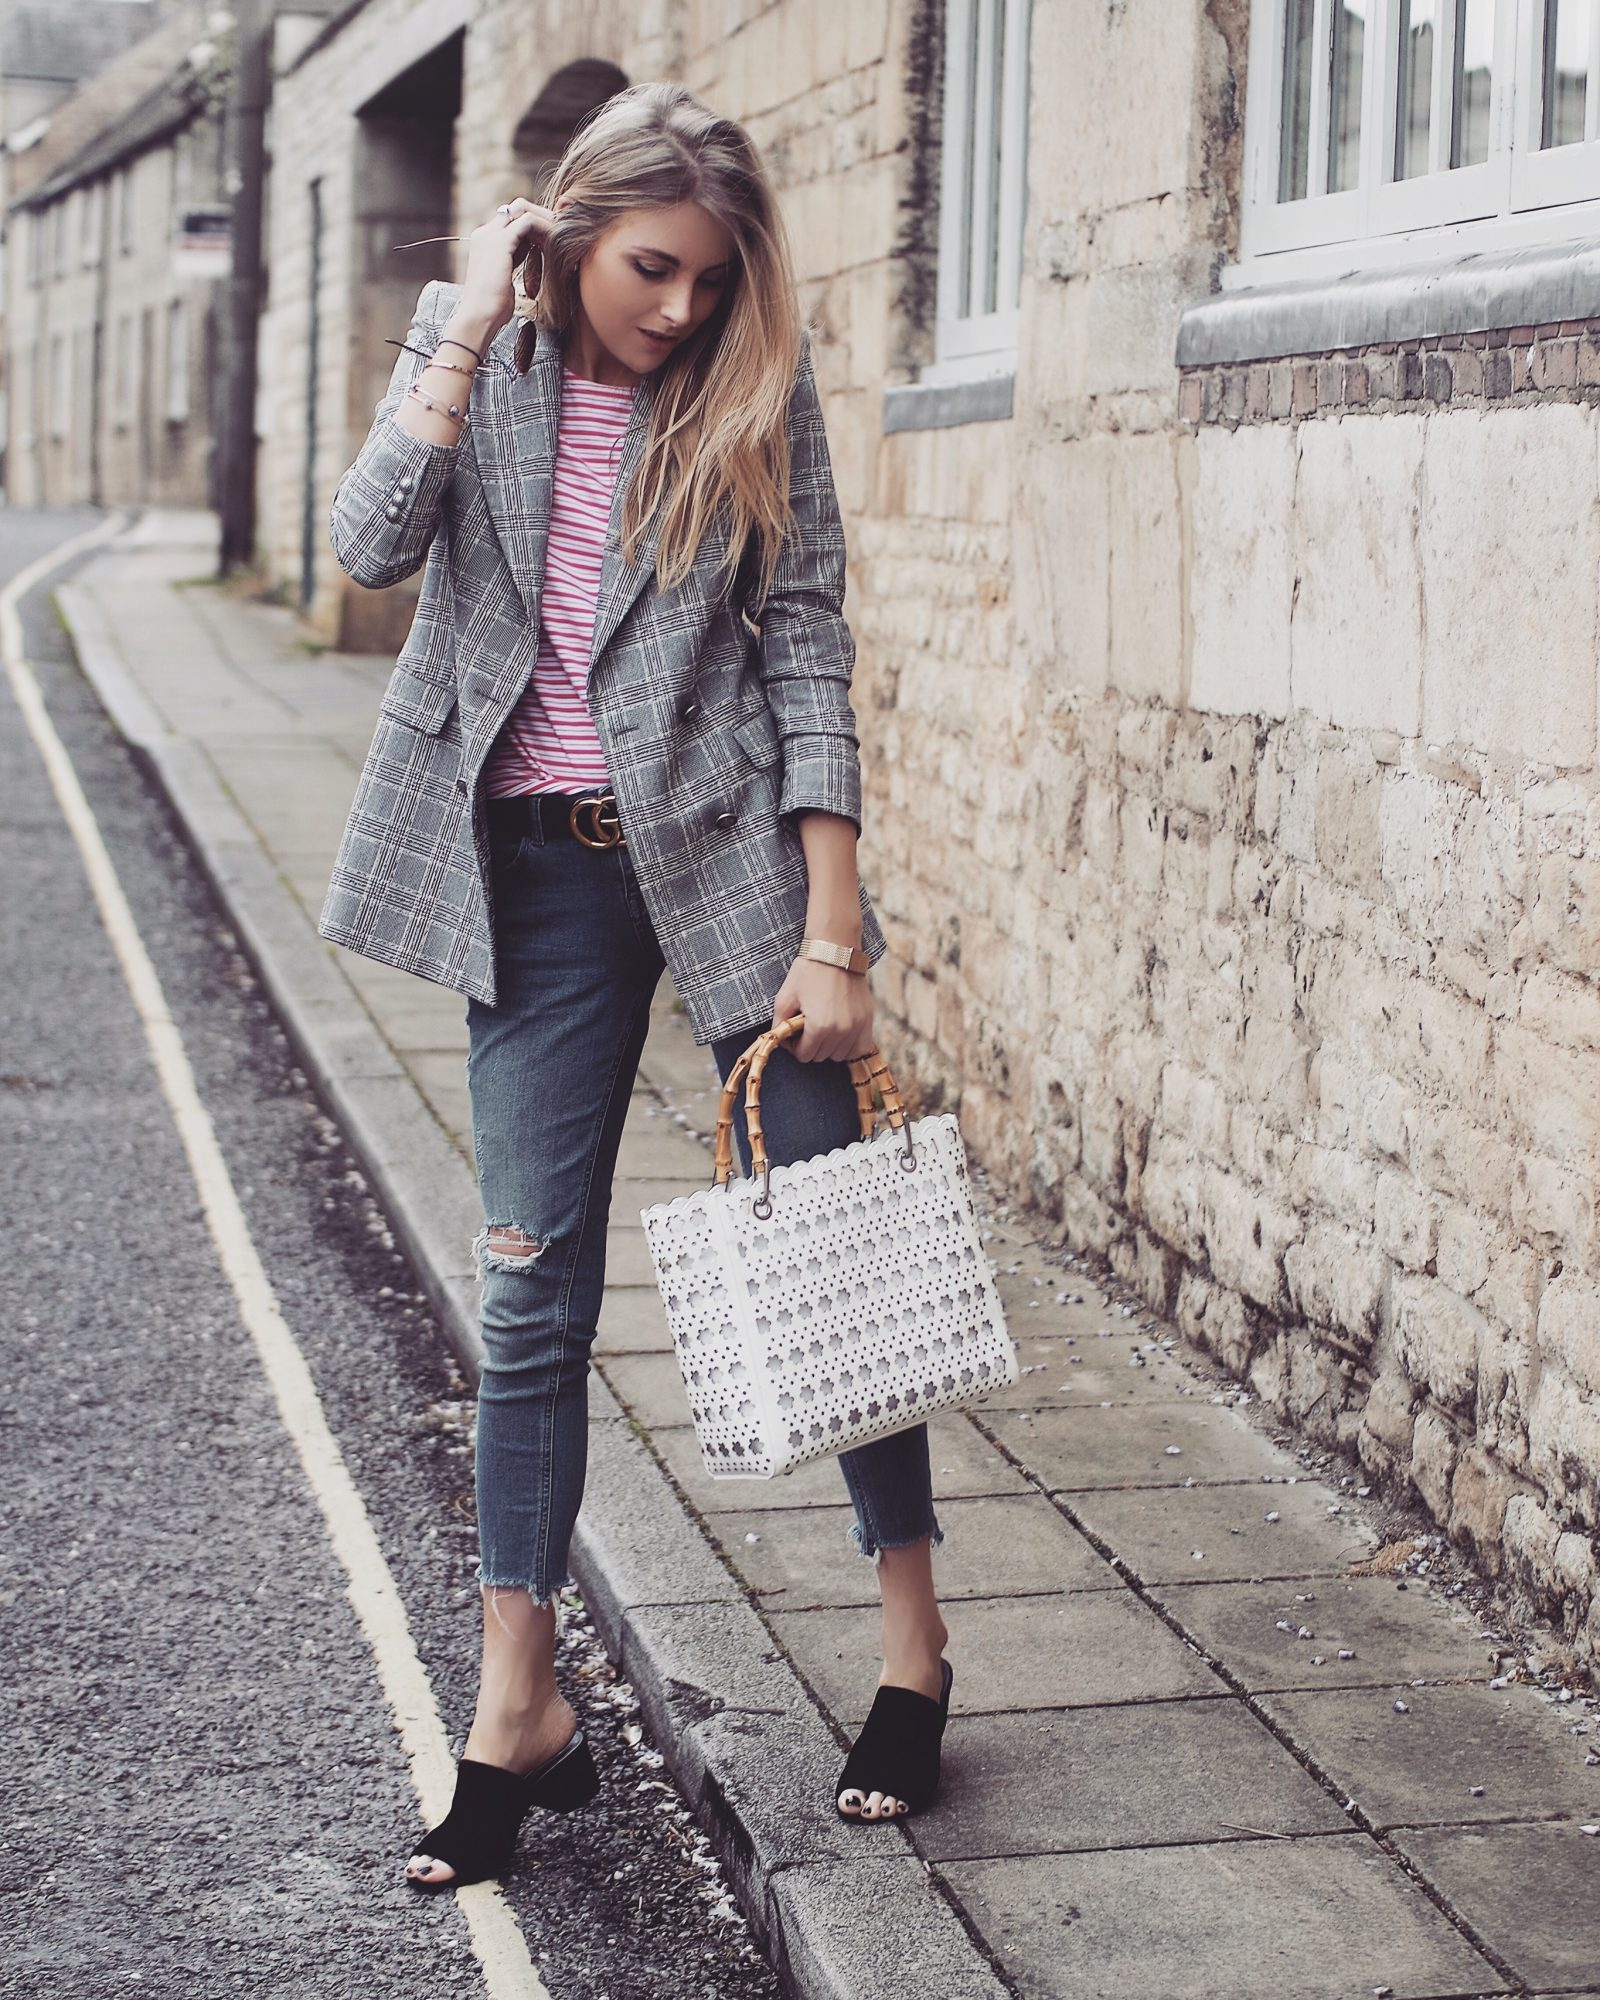 Classic Breton Tee - Outfit inspiration